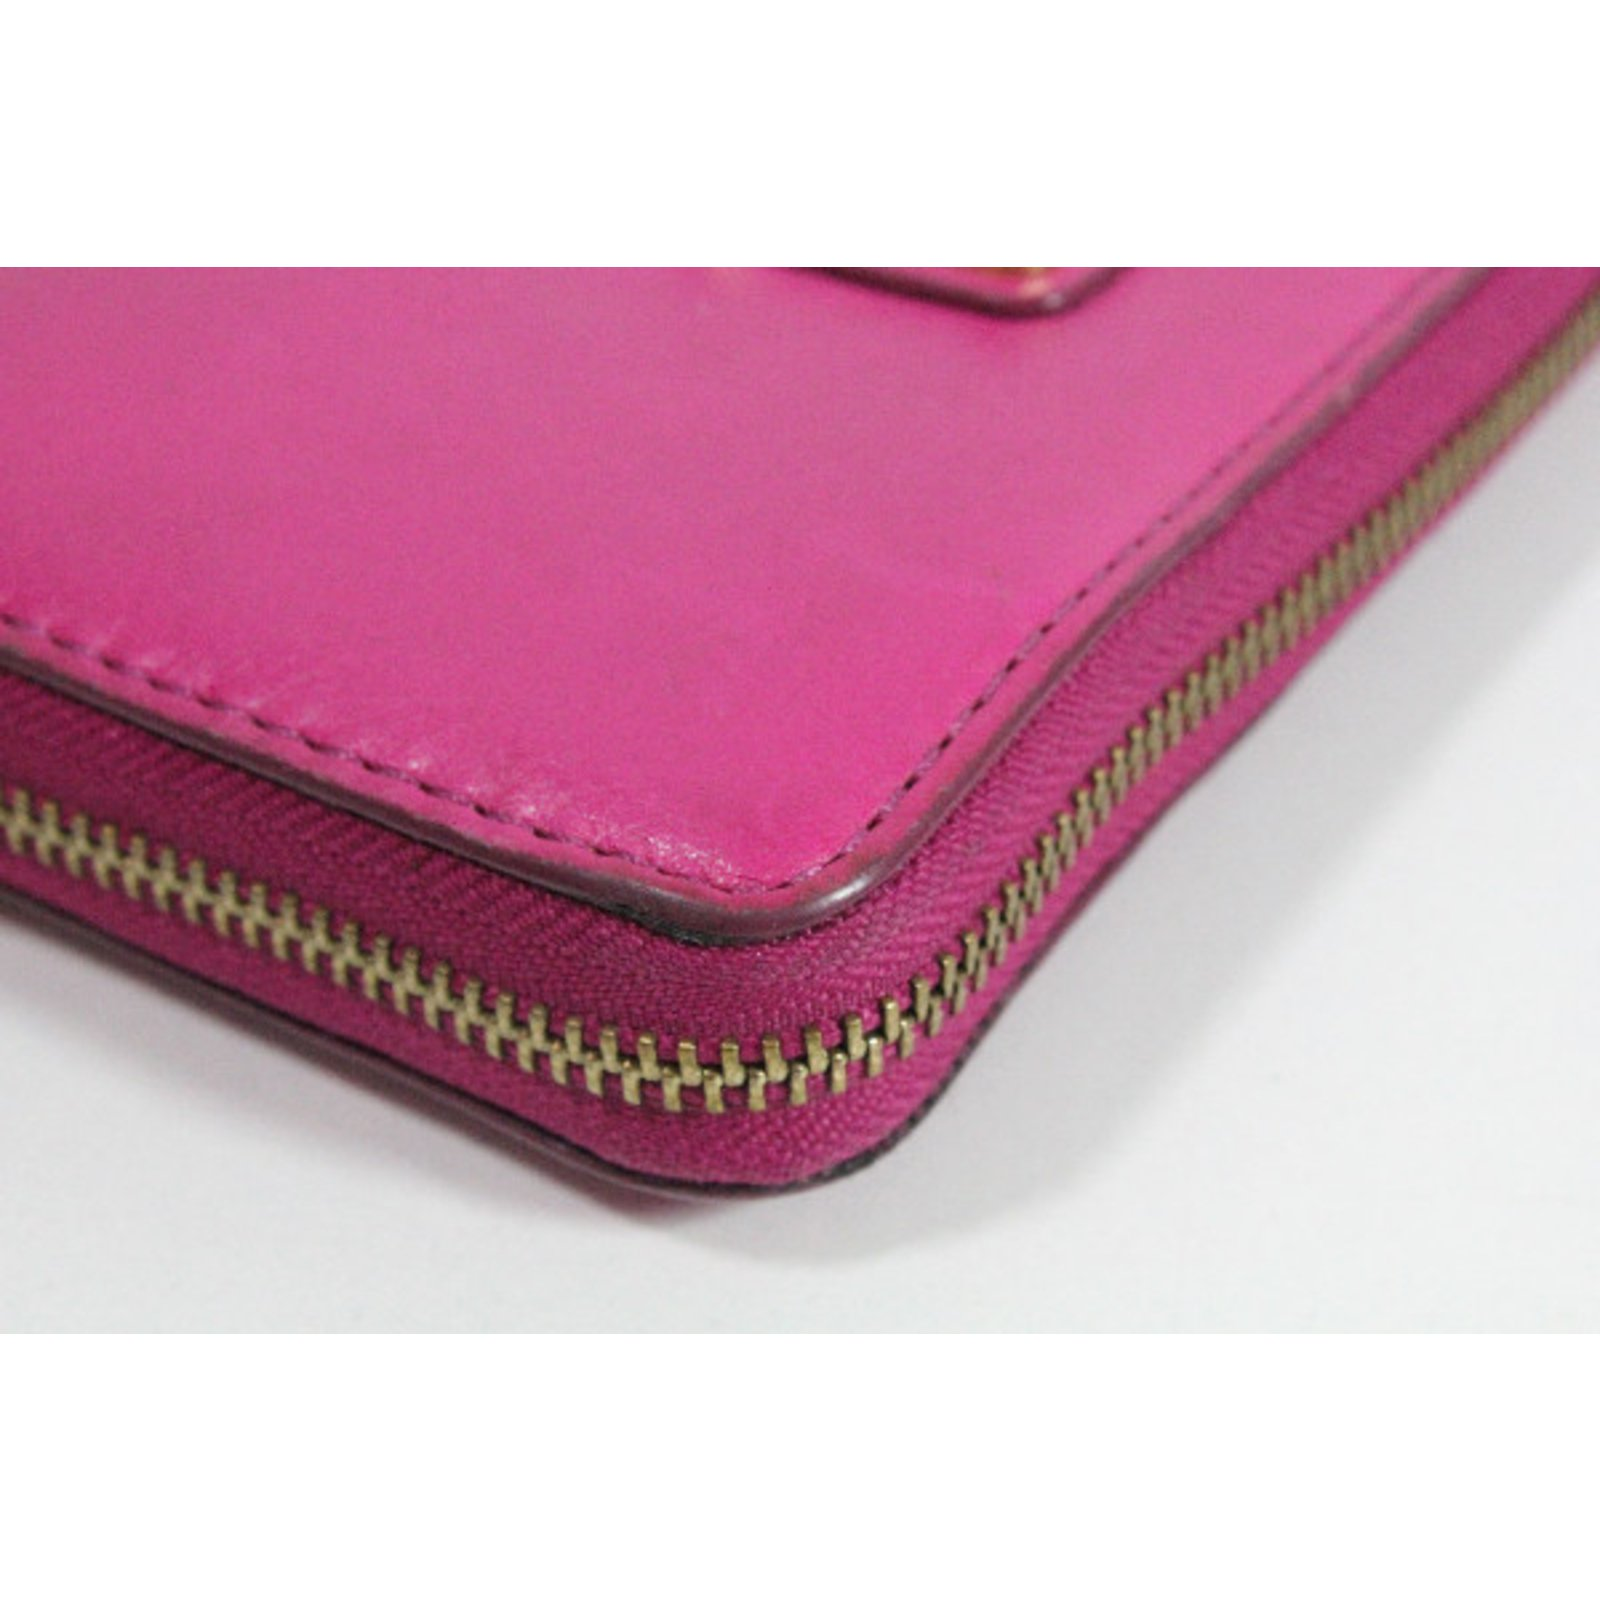 54f335dfa0 Marc by Marc Jacobs Purse Wallets Other Pink ref.29800 - Joli Closet